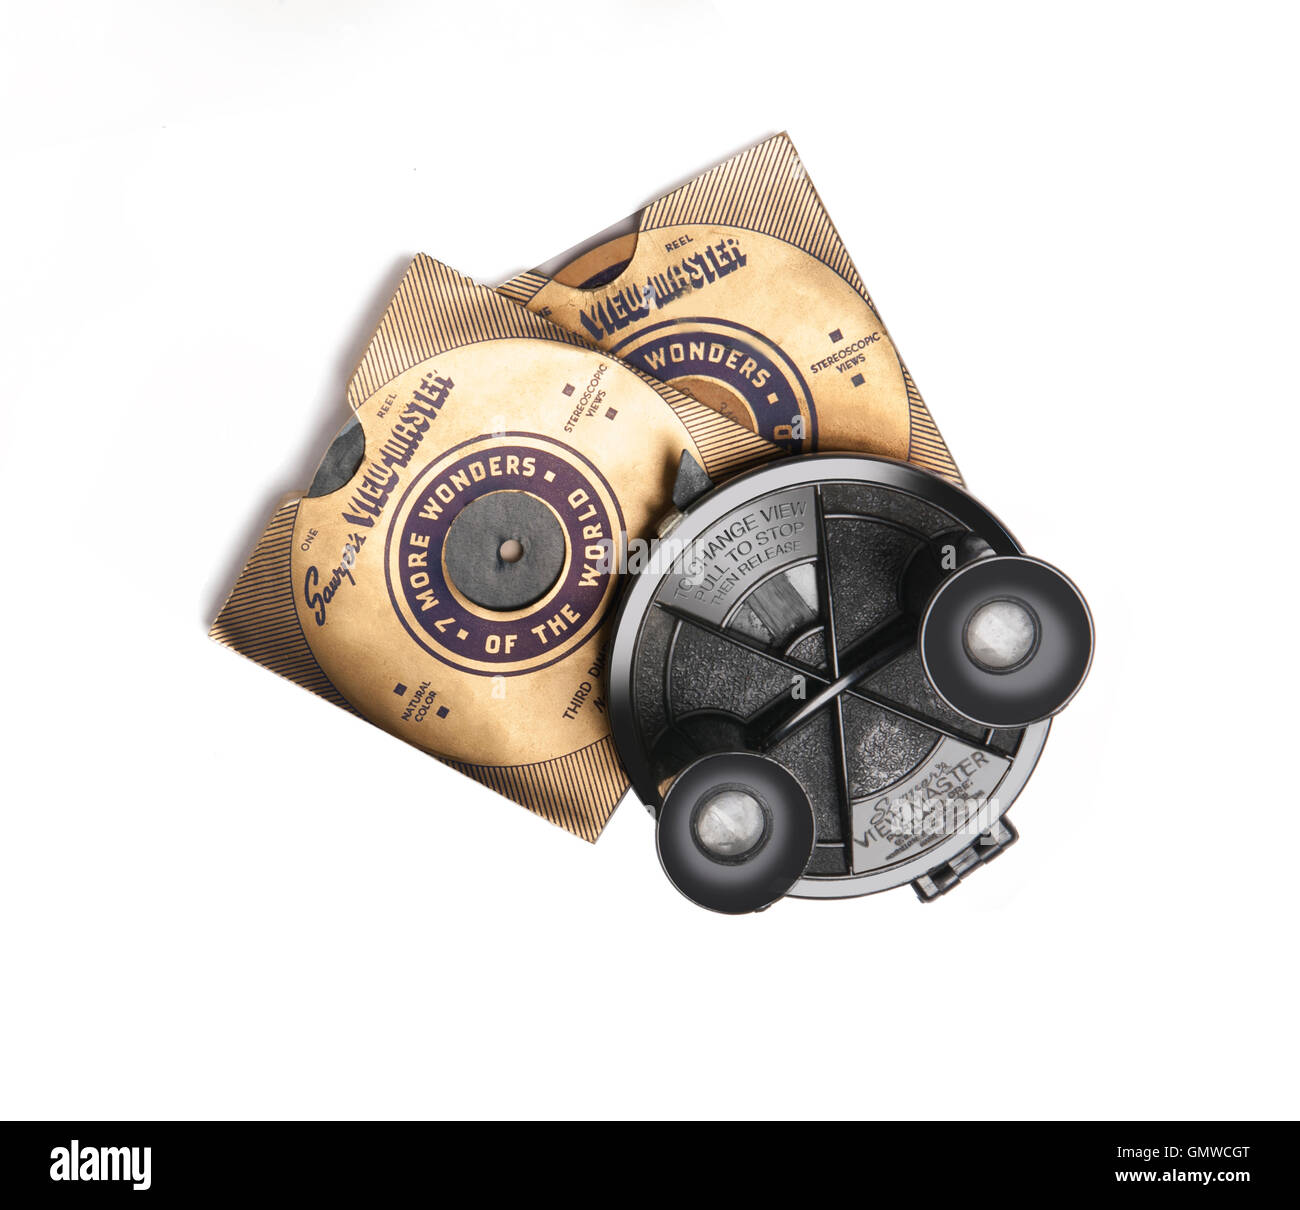 1930 Viewmaster 3d viewer with sleeved disks - Stock Image